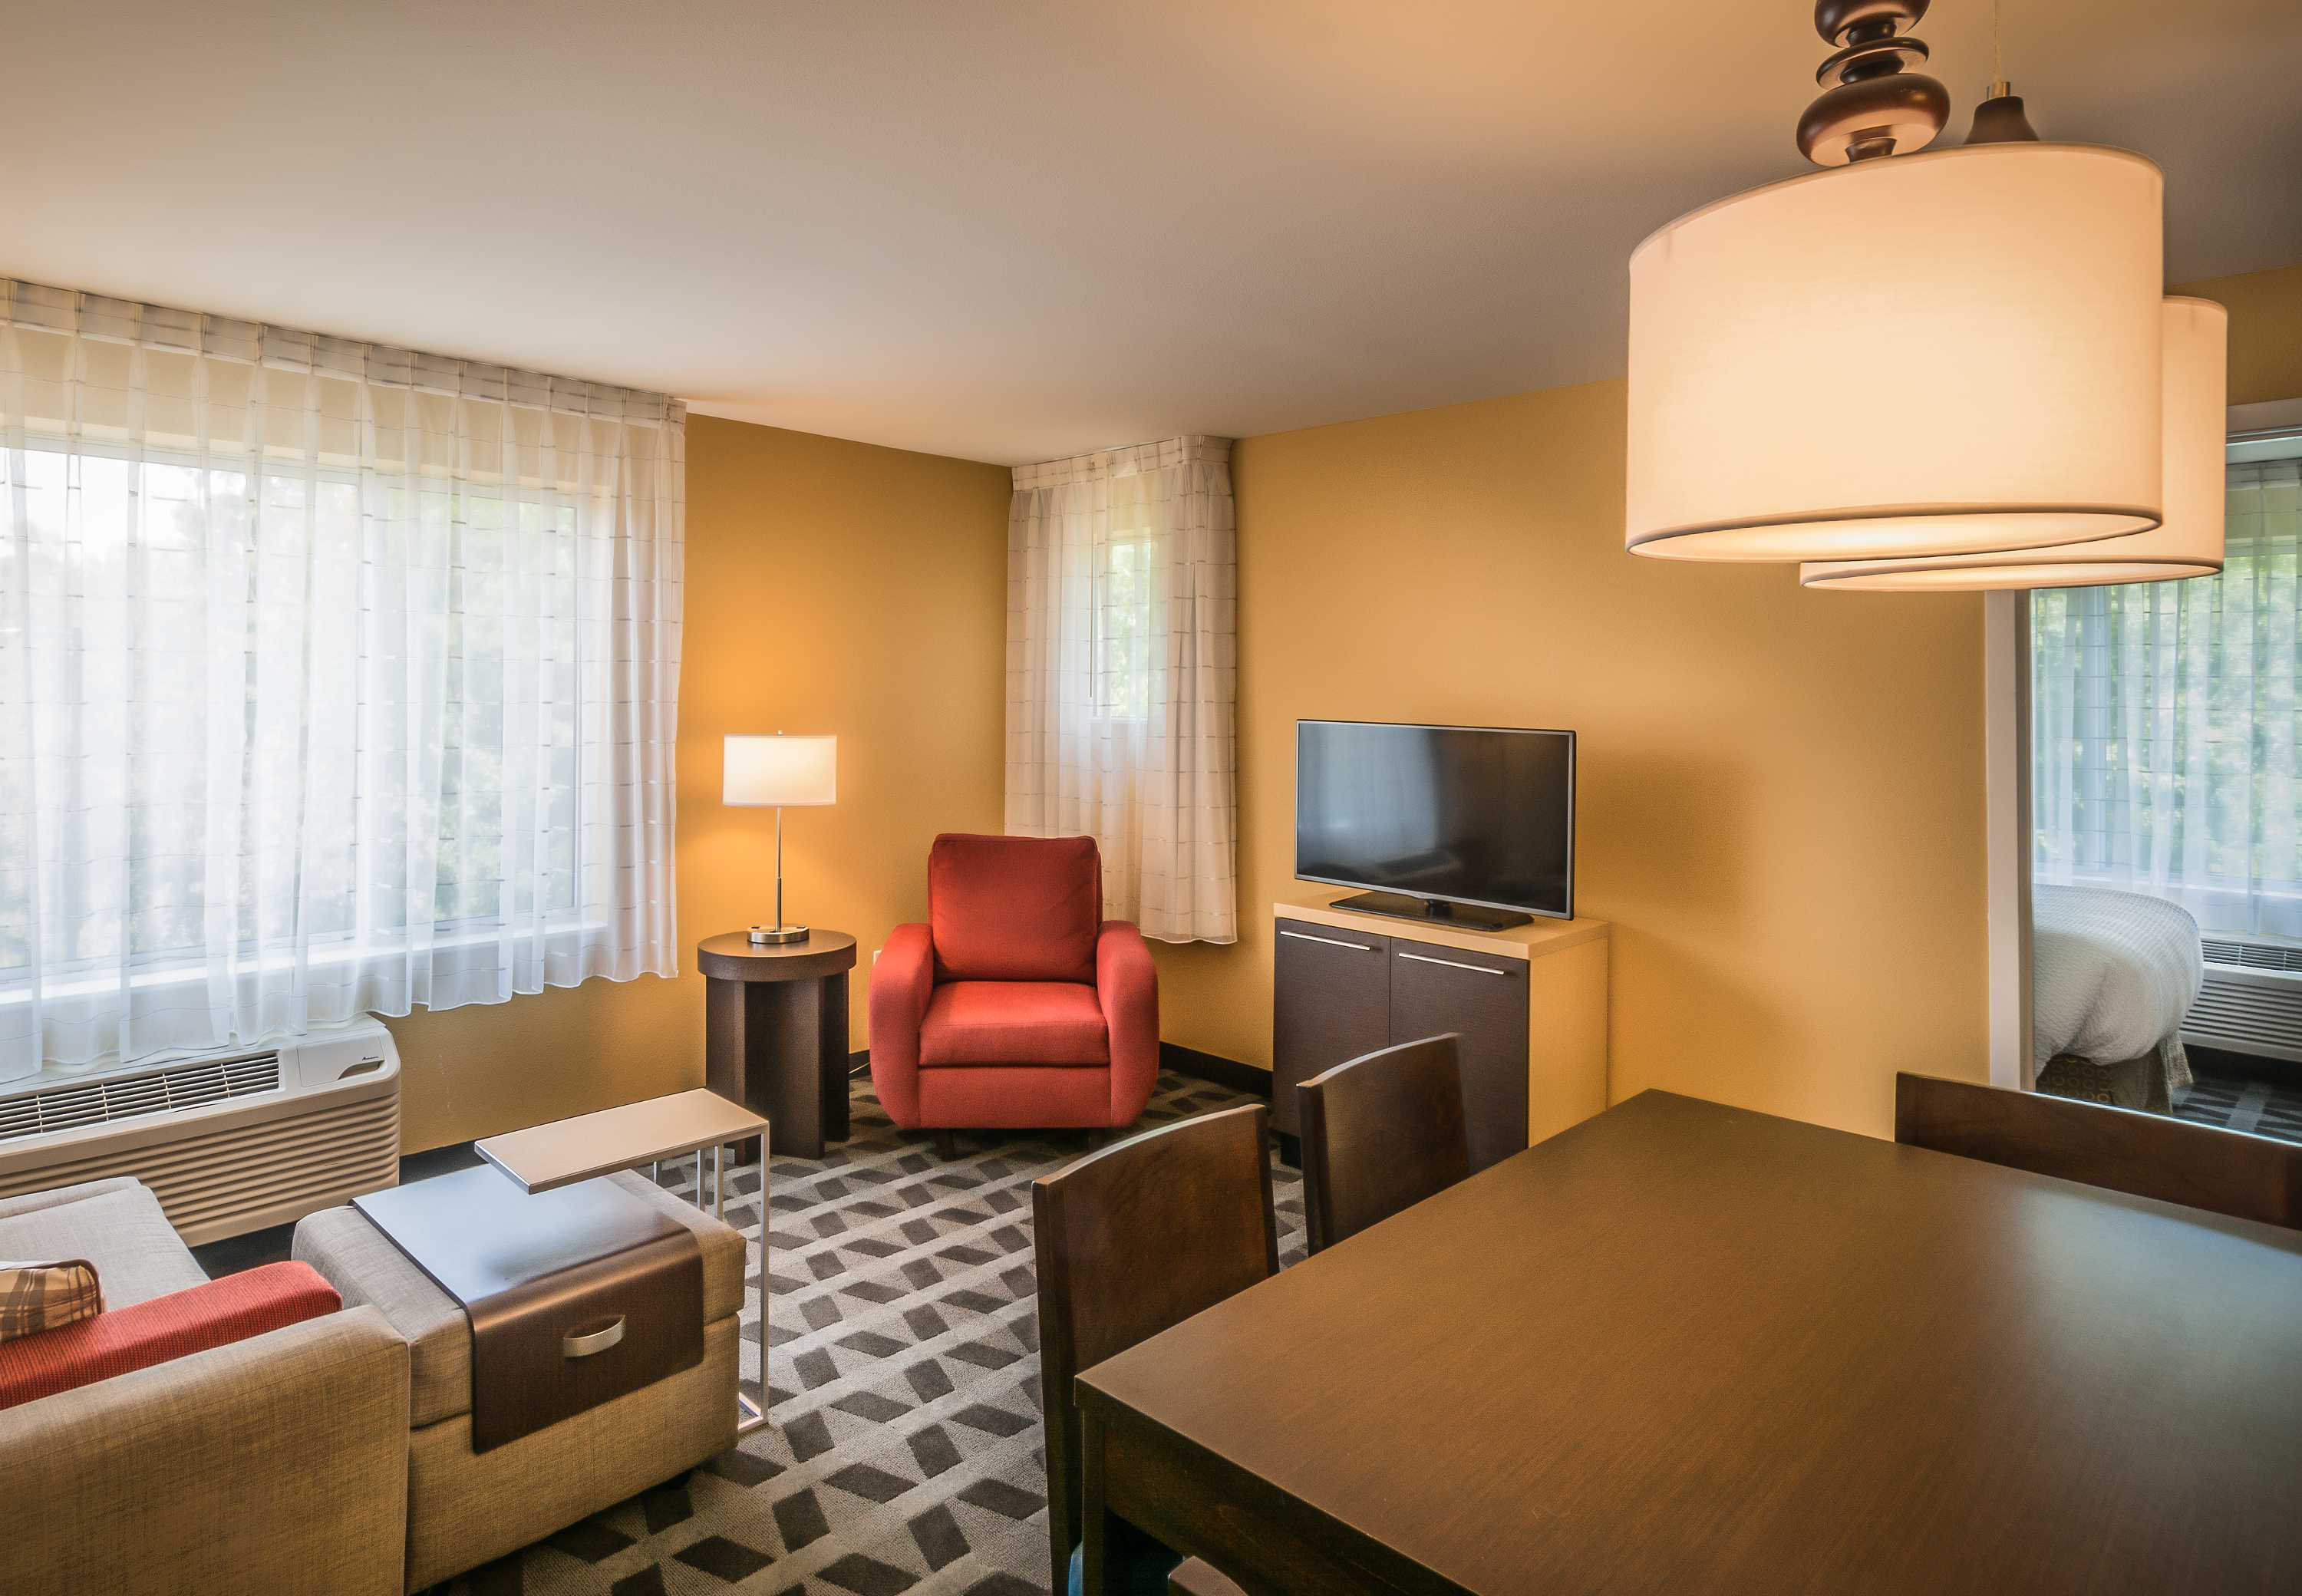 TownePlace Suites by Marriott Goldsboro image 1